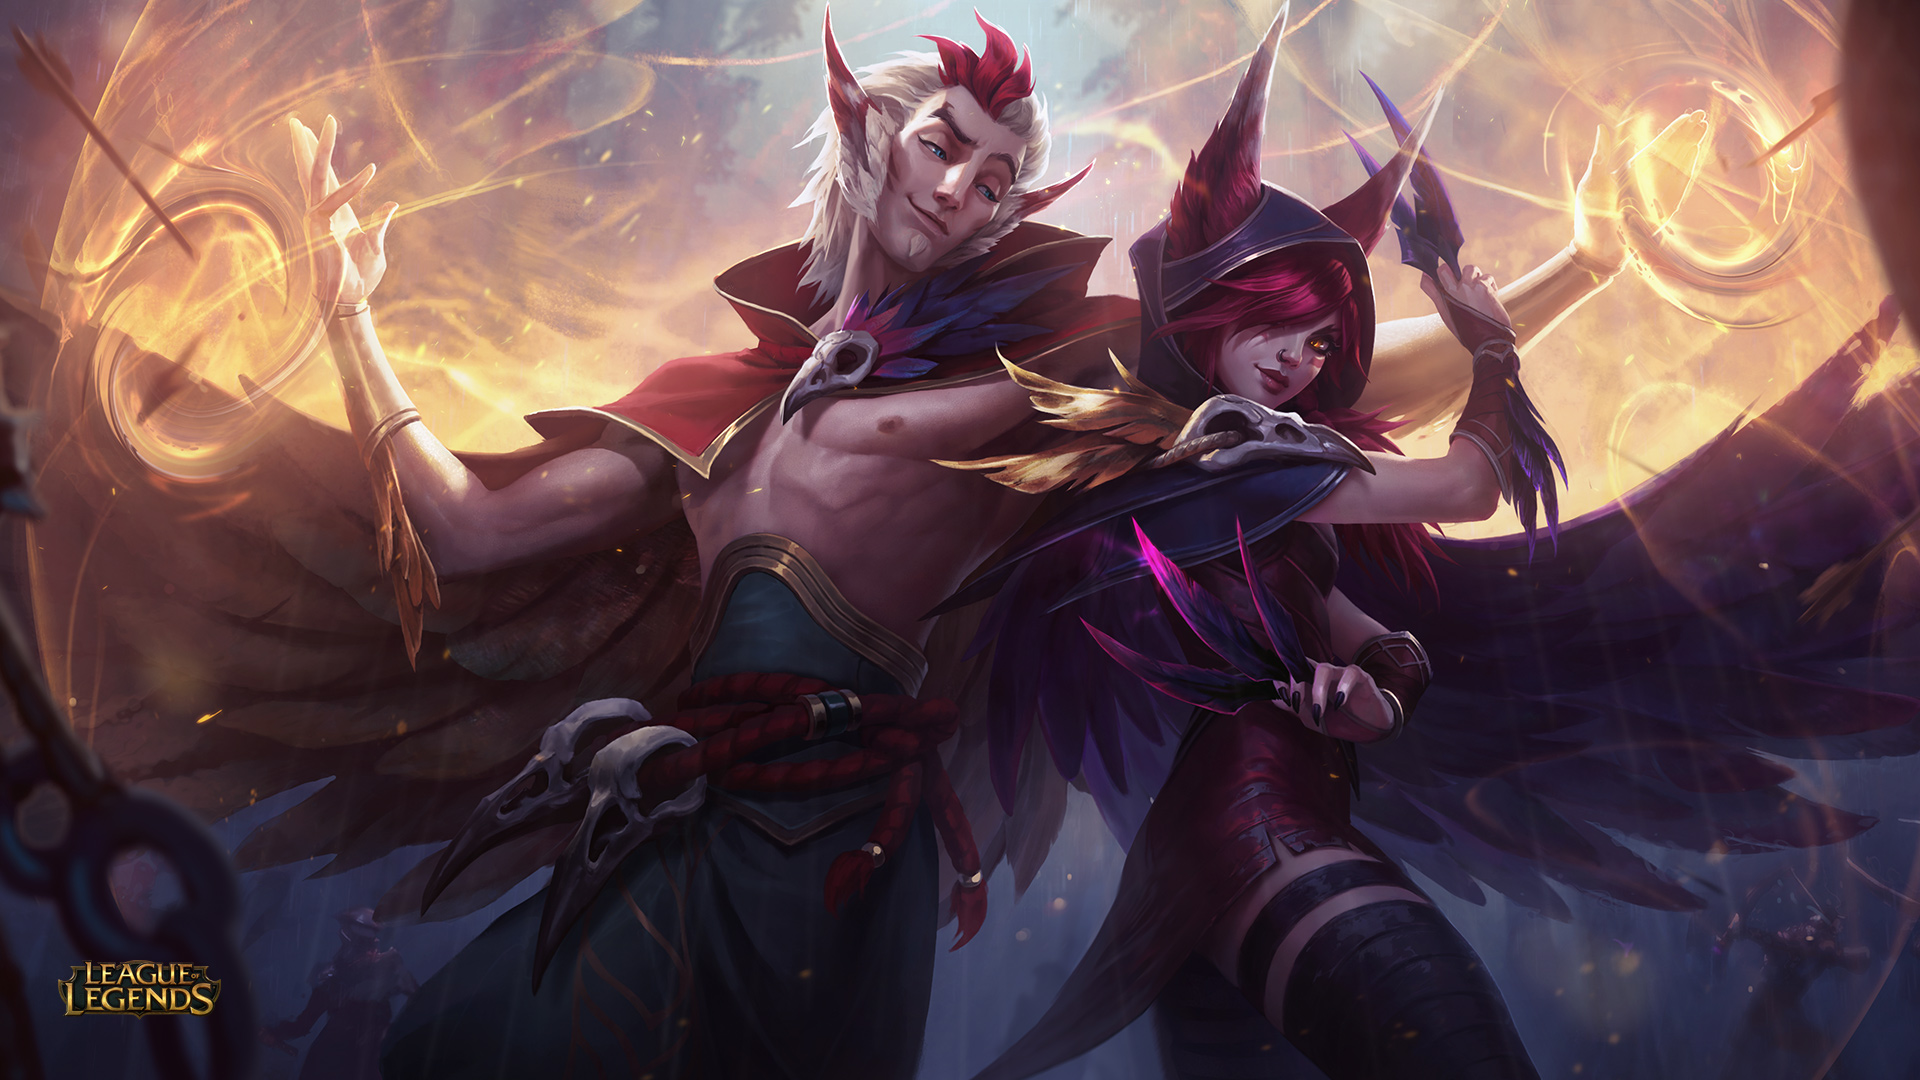 Skts Bang Promises To Do A Xayah And Rakan Cosplay With